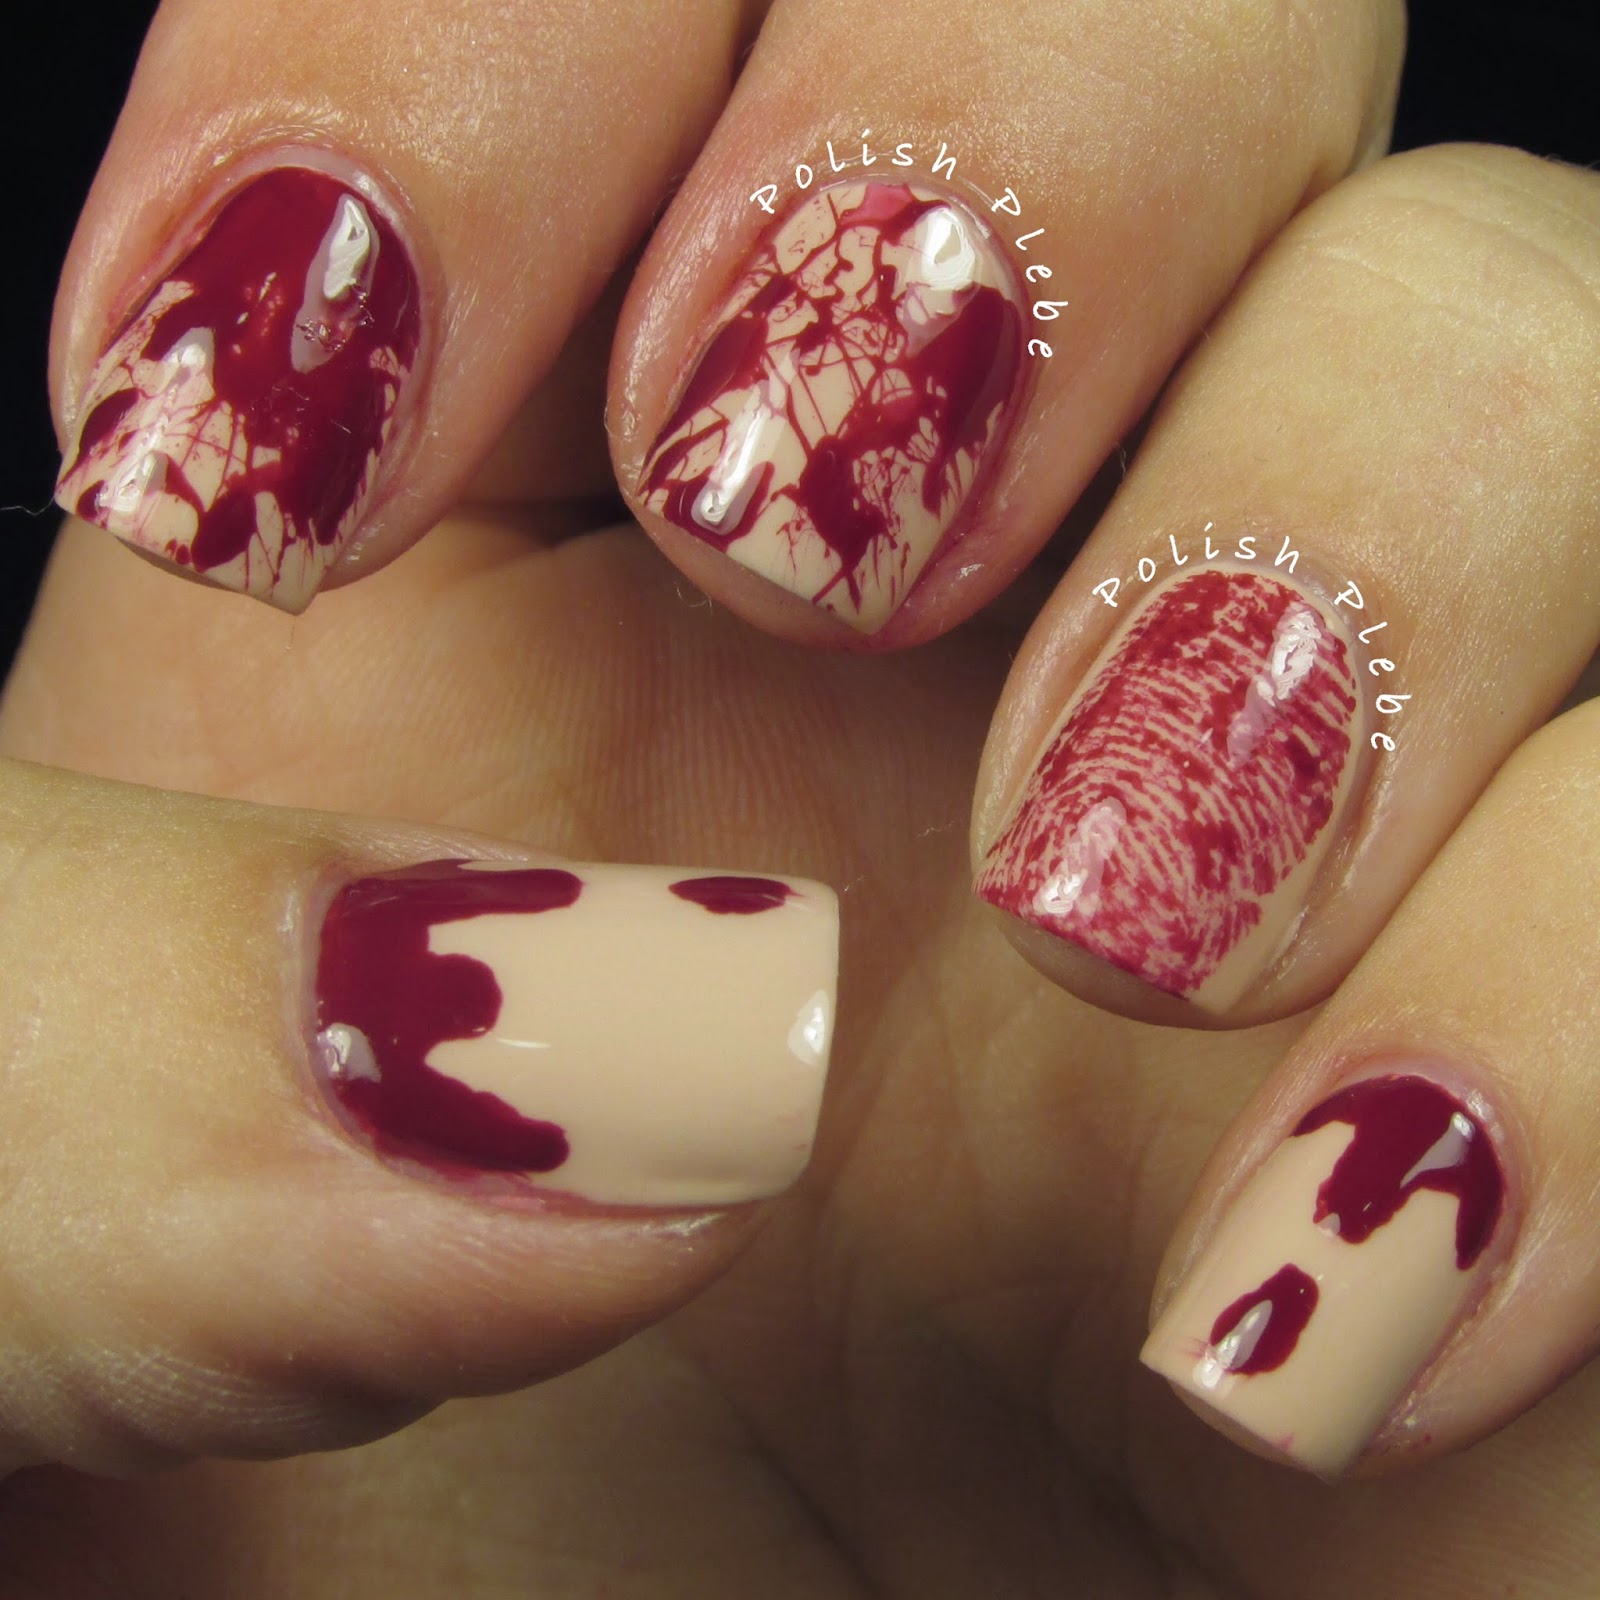 Nails Art: What a Bloody Mess! Nail Art Design